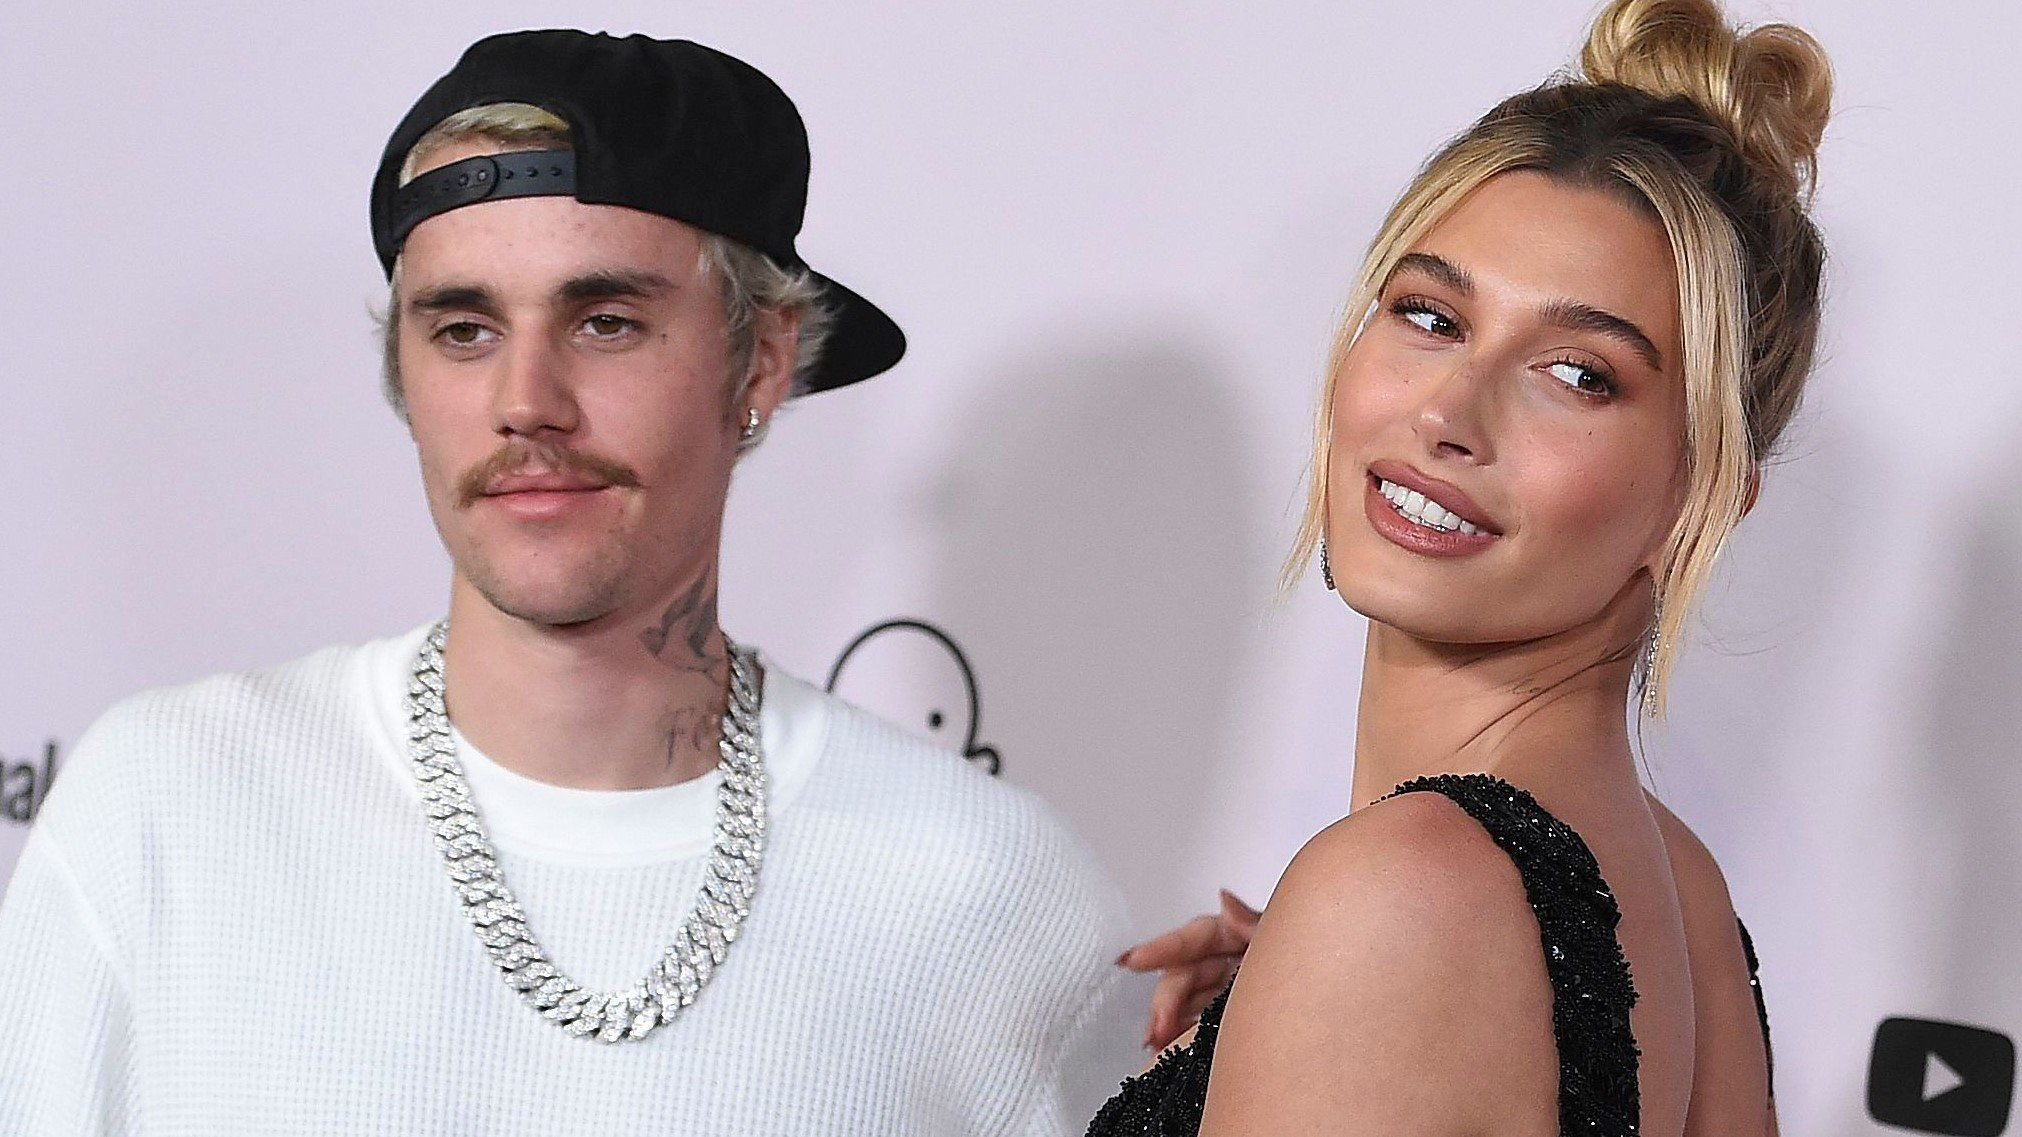 Hailey Baldwin Admits That Getting Compared To Justin Bieber S Exes Makes Her Feel Like Less Of A Woman Hailey Baldwin Justin Justin Bieber